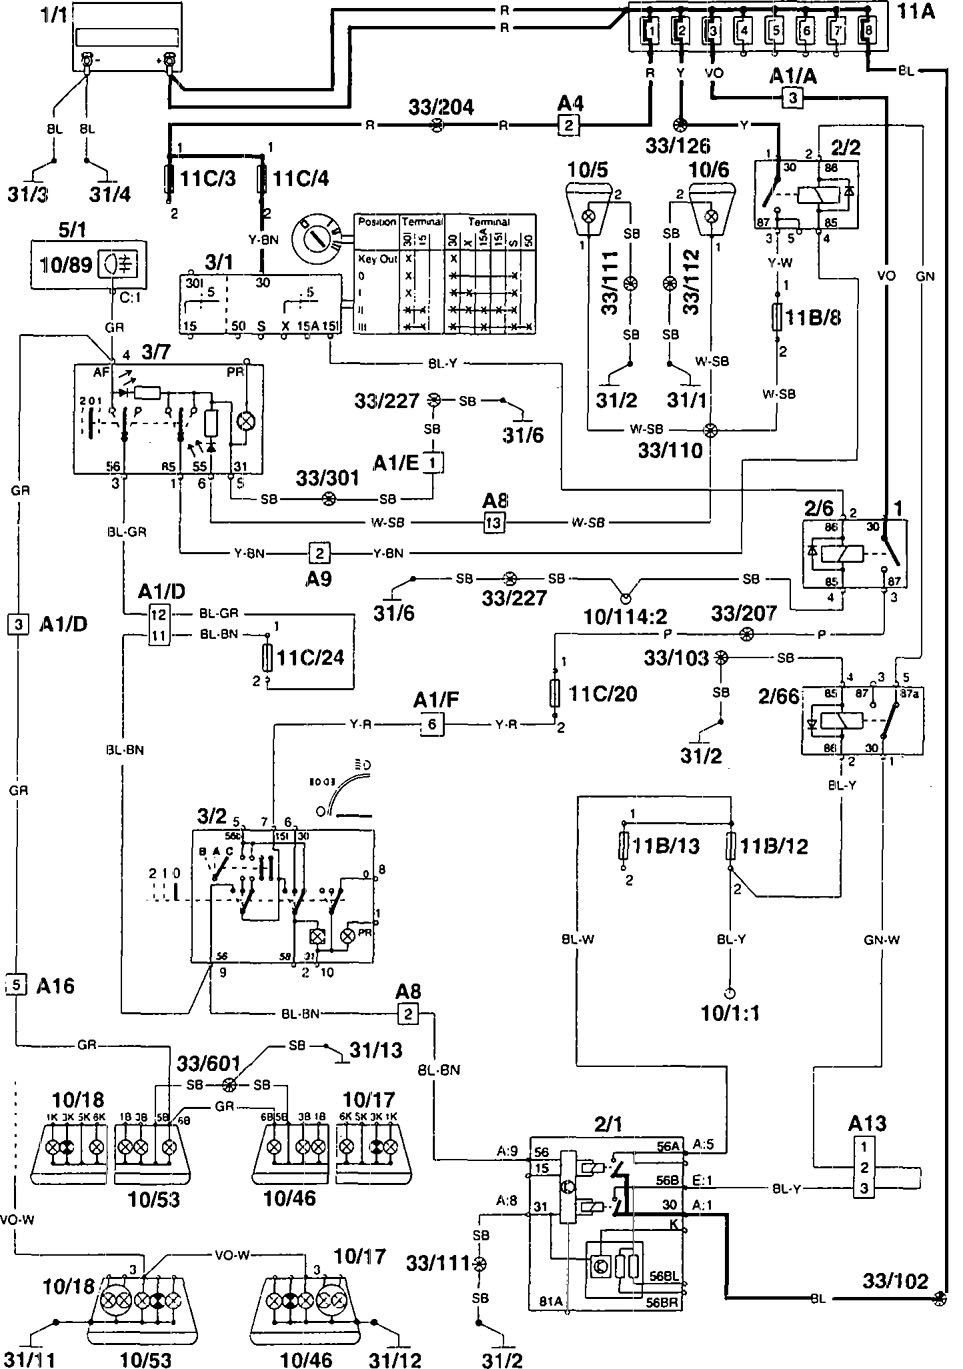 volvo 960  1995  - wiring diagrams - fog lamps